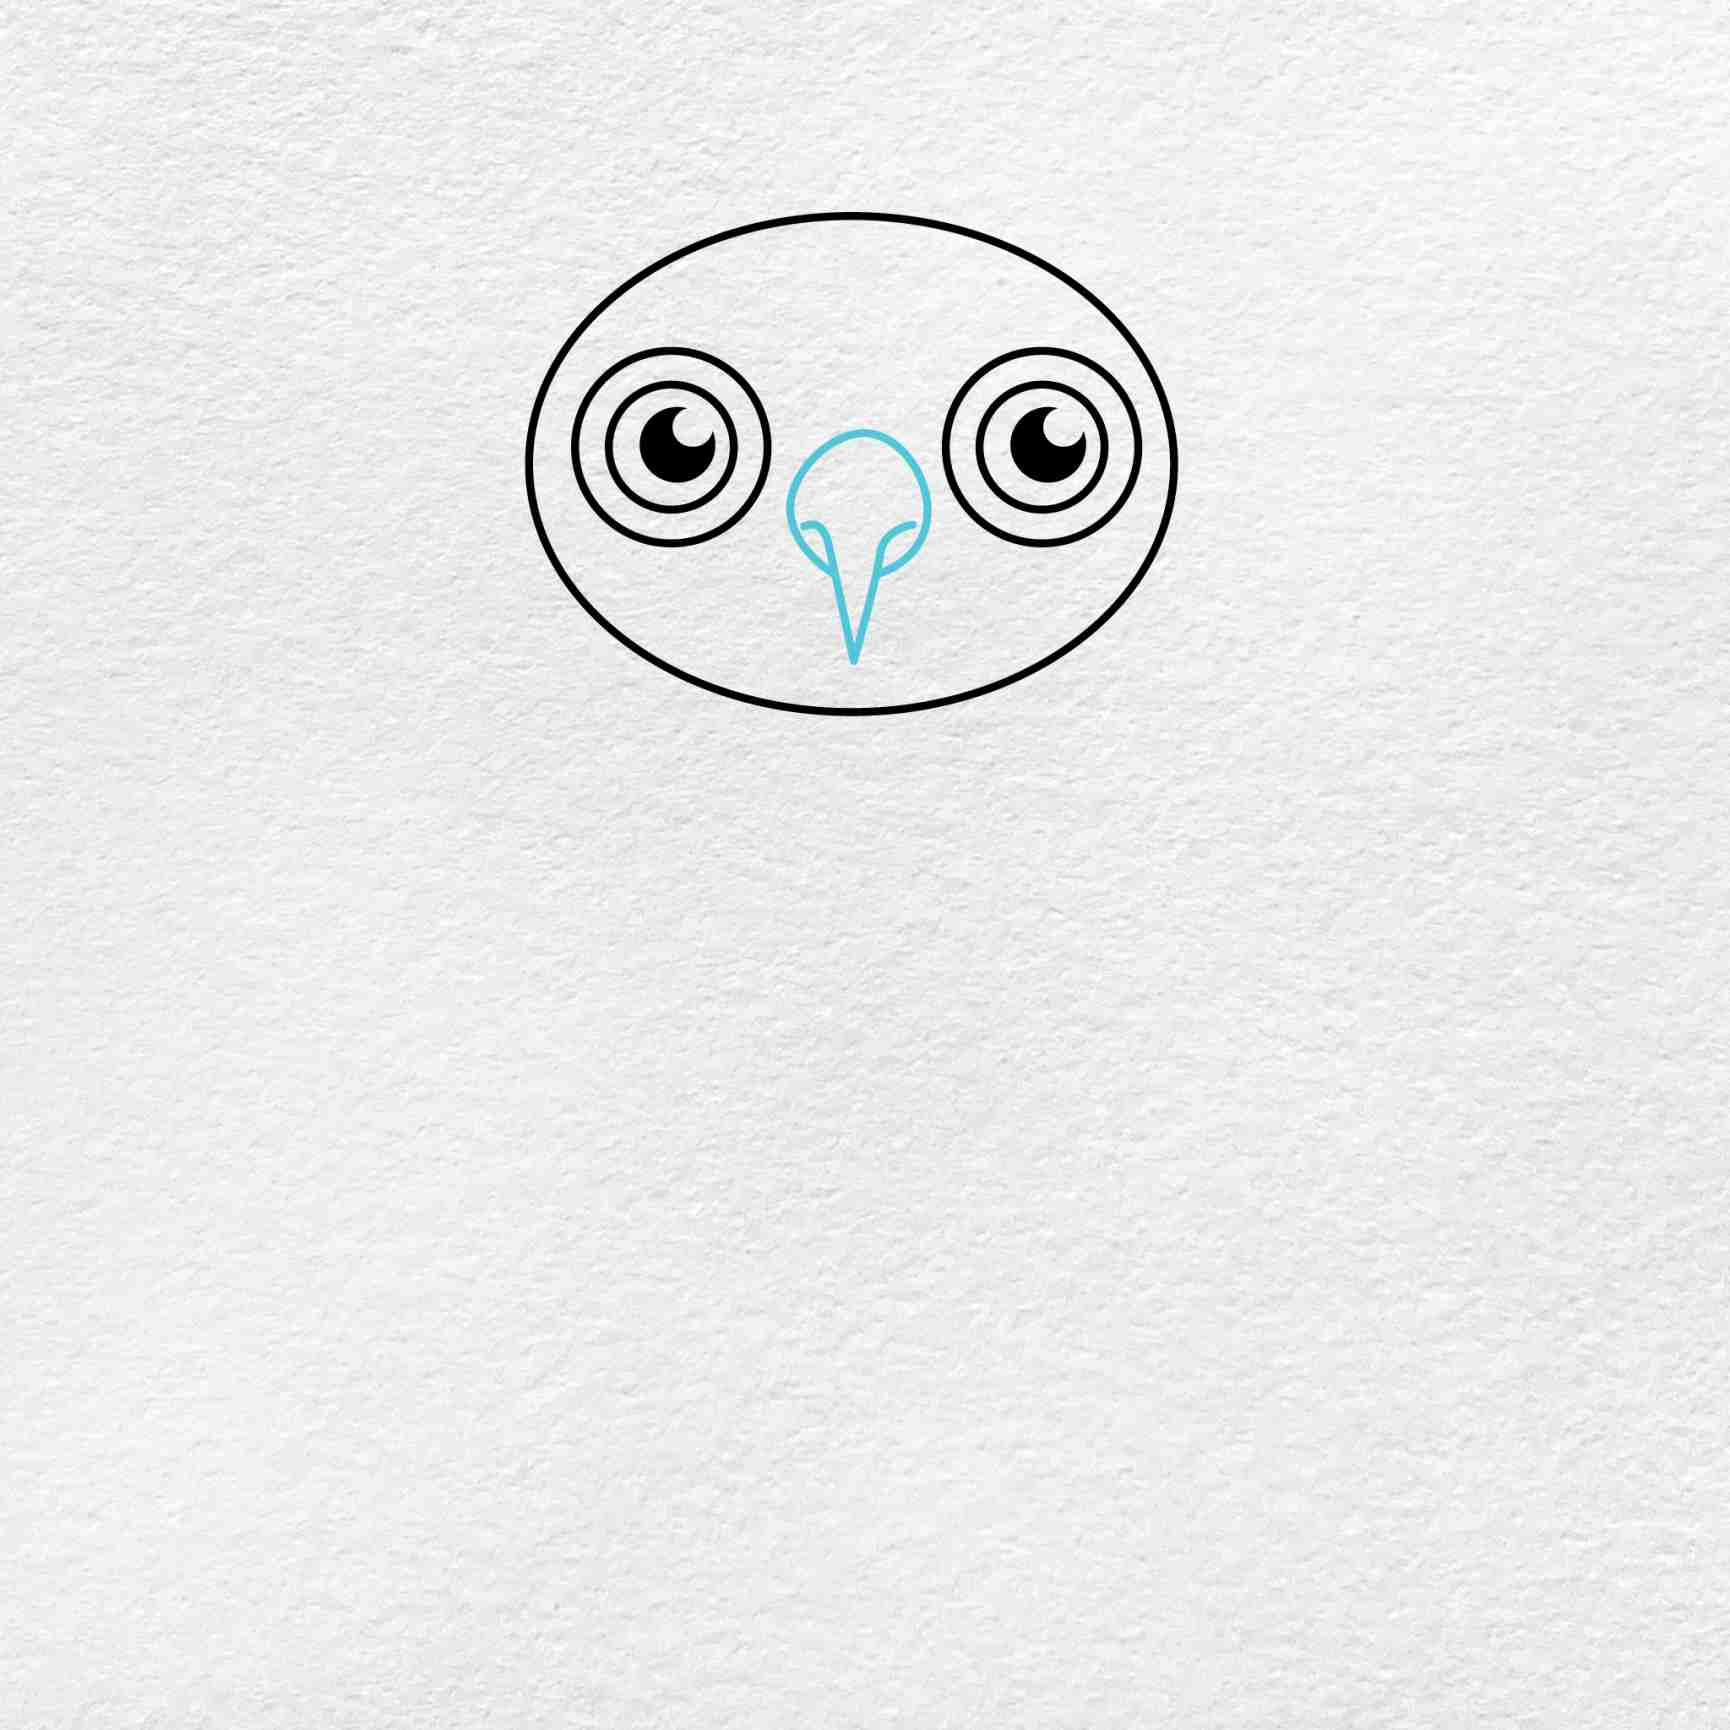 How To Draw An Owl: Step 3